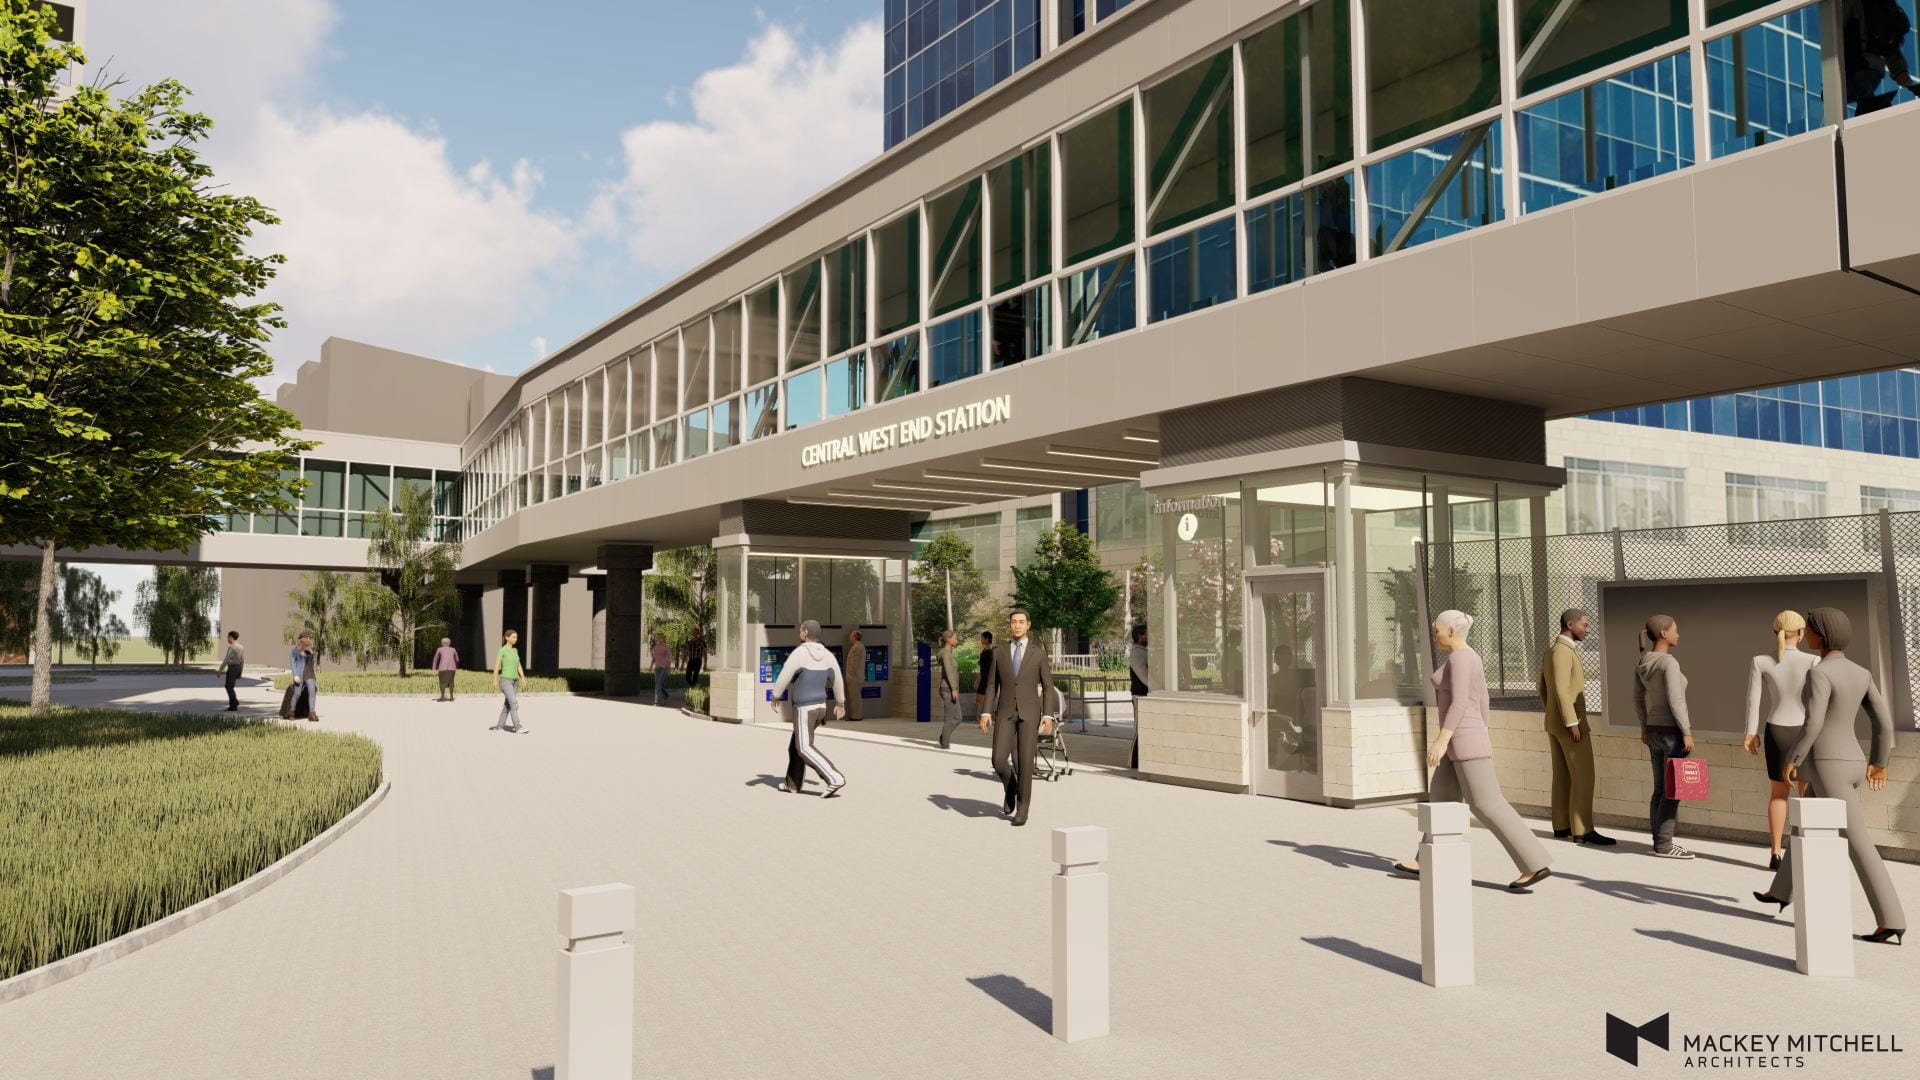 WUSM Projects & Planning: CWE MetroLink Station Renovation